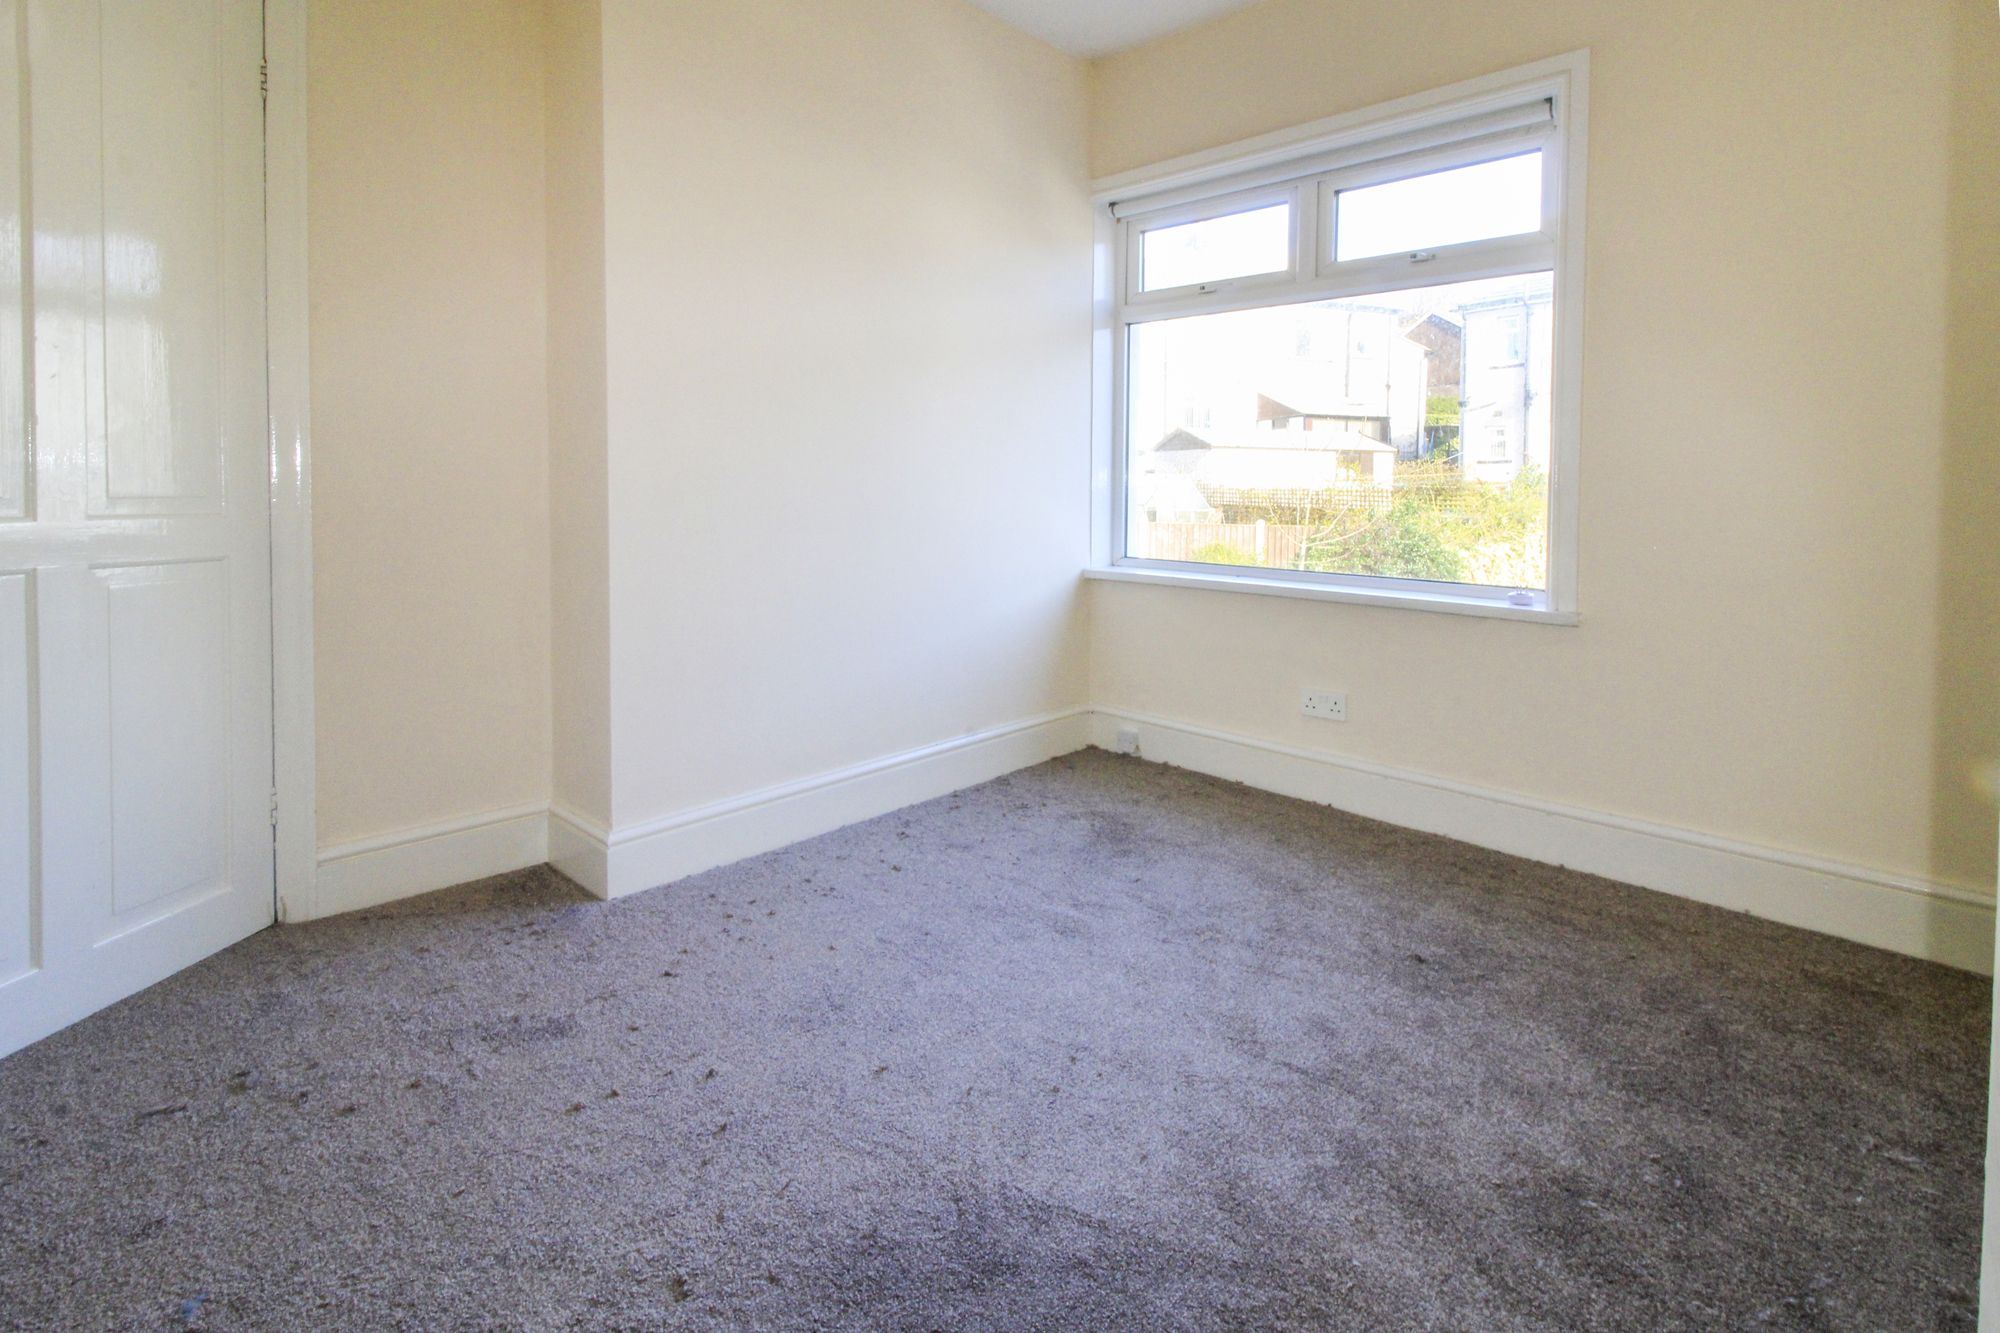 3 bedroom semi-detached house To Let in Shipley - Bedroom